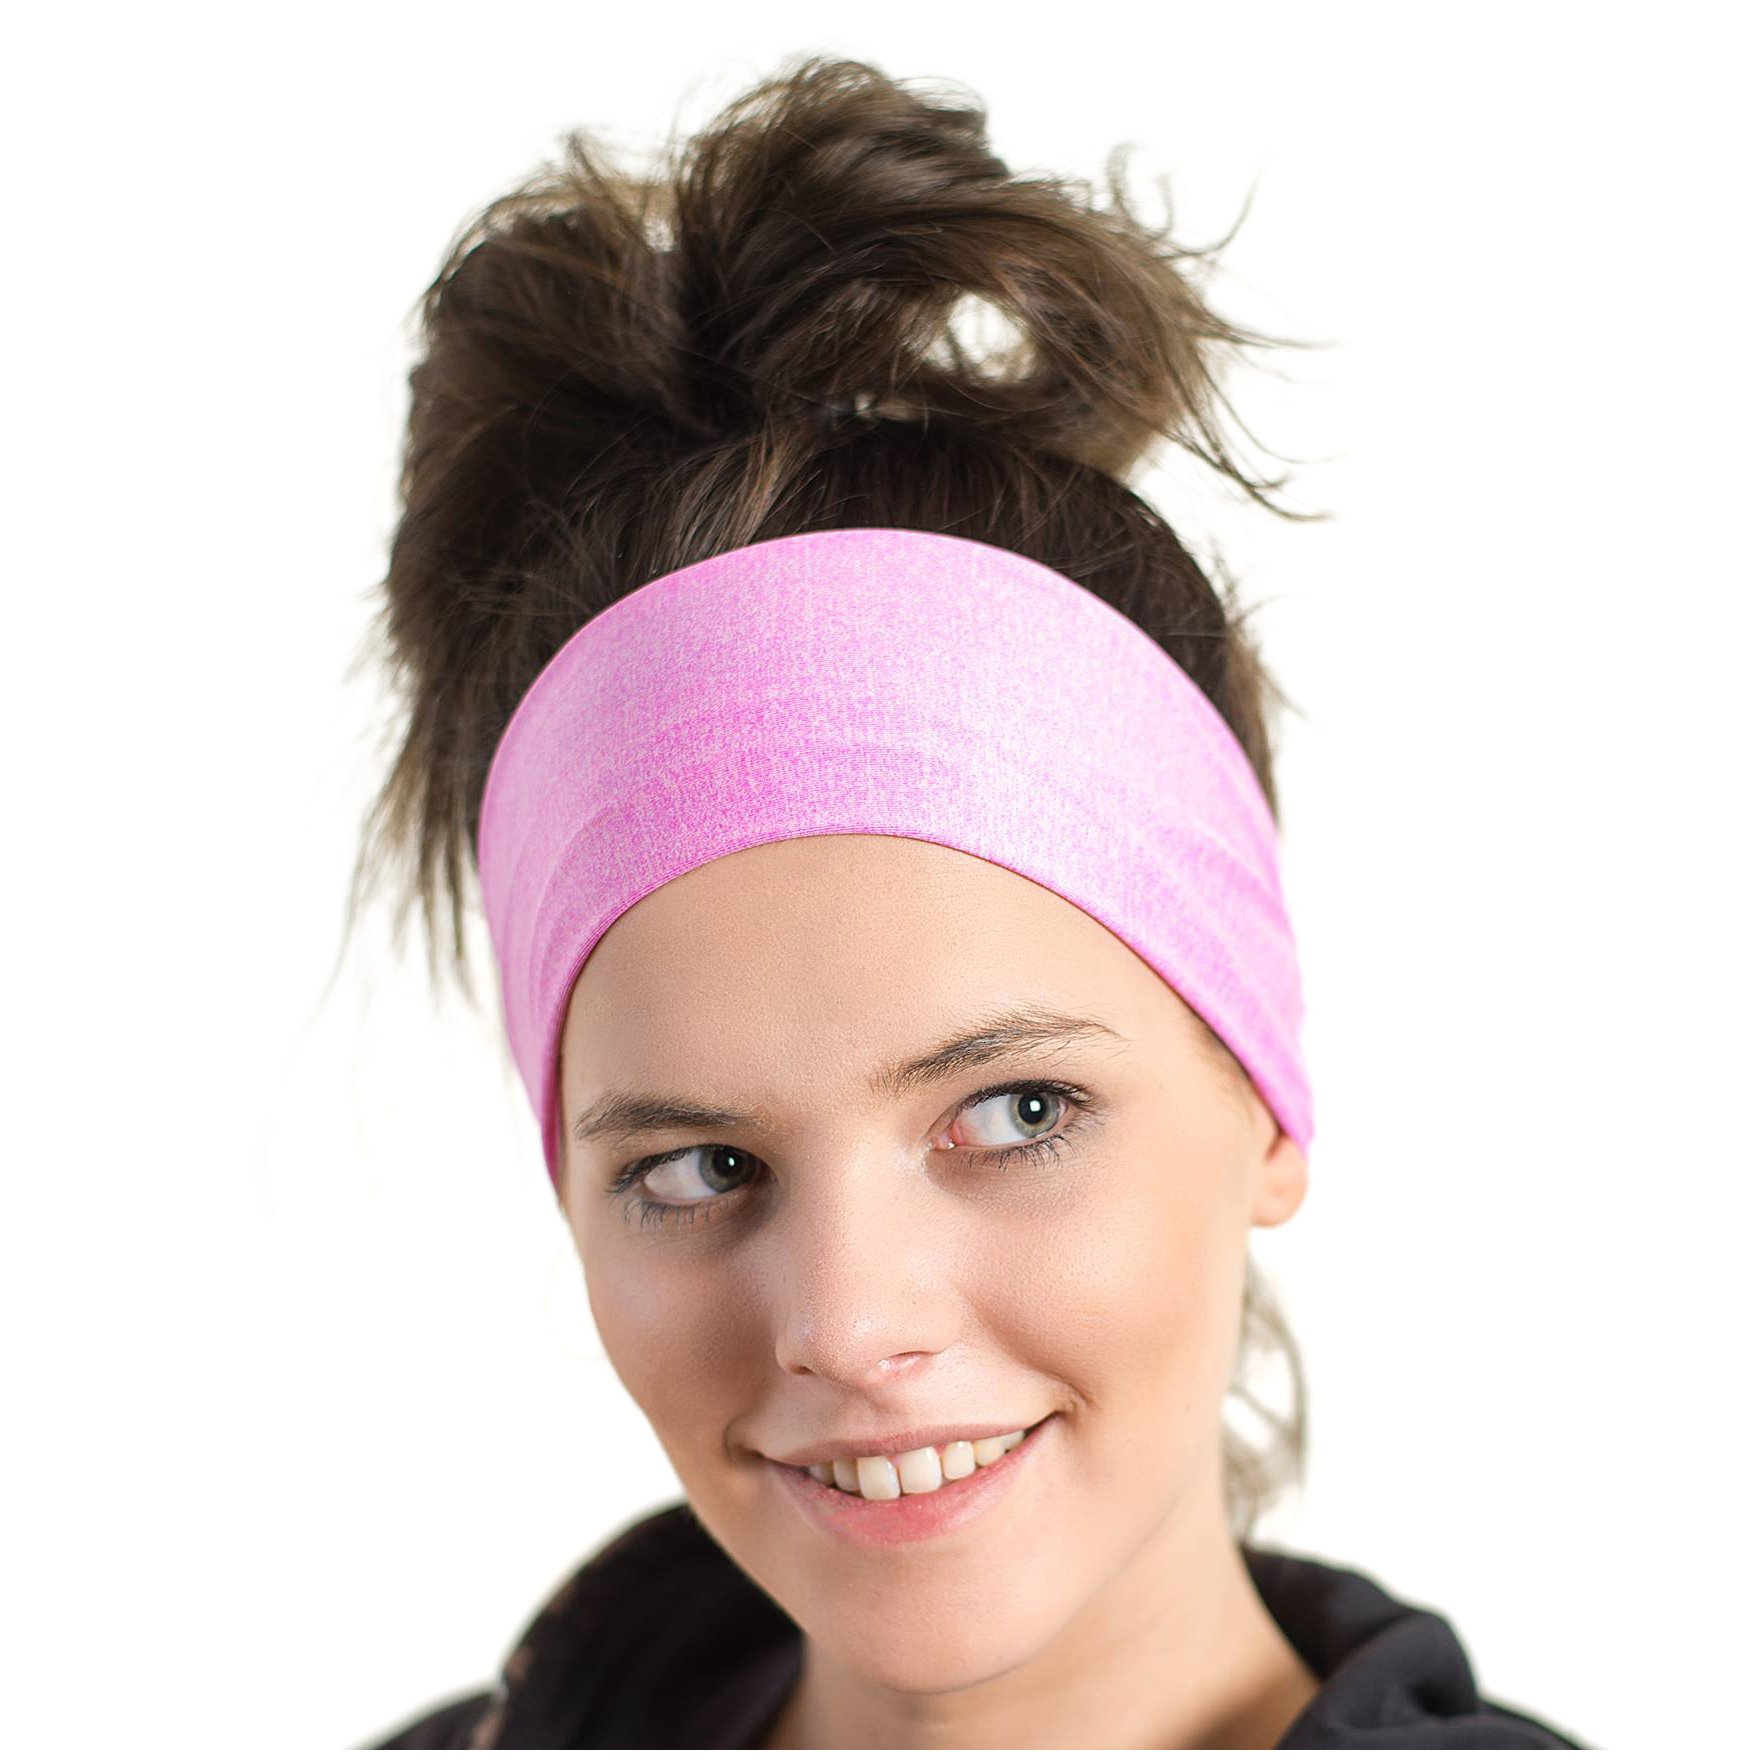 Red Dust Active Lightweight Sports Headband - Moisture Wicking Pink Sweatband - Ideal for Running, Cycling, Hot Yoga and Athletic Workouts - Designed for Women Borrowed by Men by Red Dust Active (Image #1)